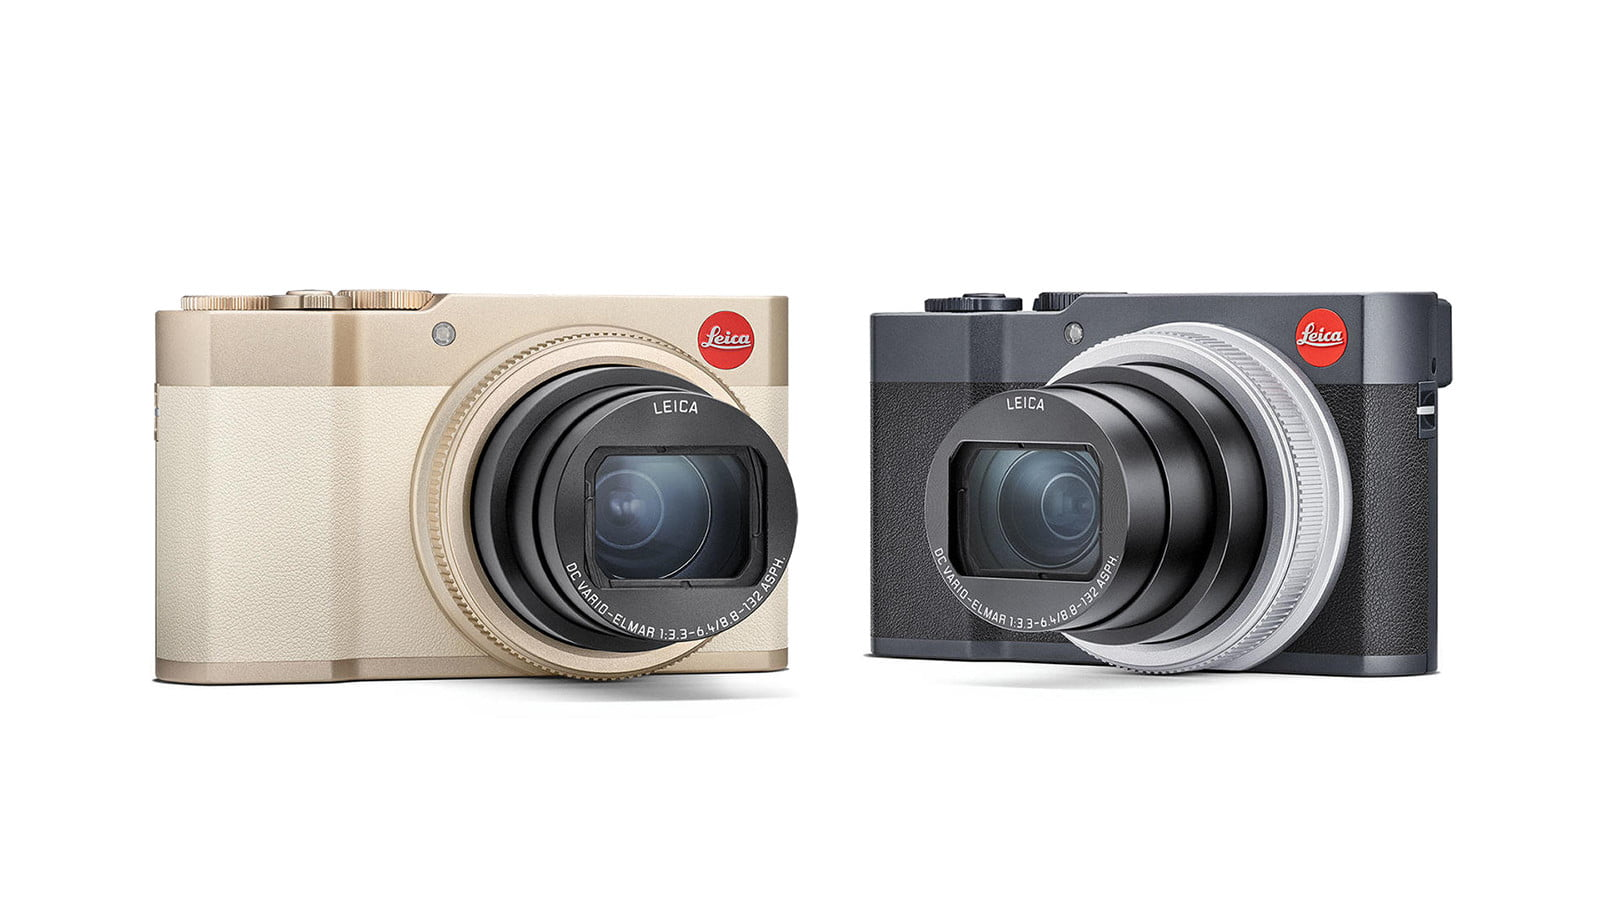 Leica C-Lux Mixes Classic Style With Modern Zoom | Digital Trends